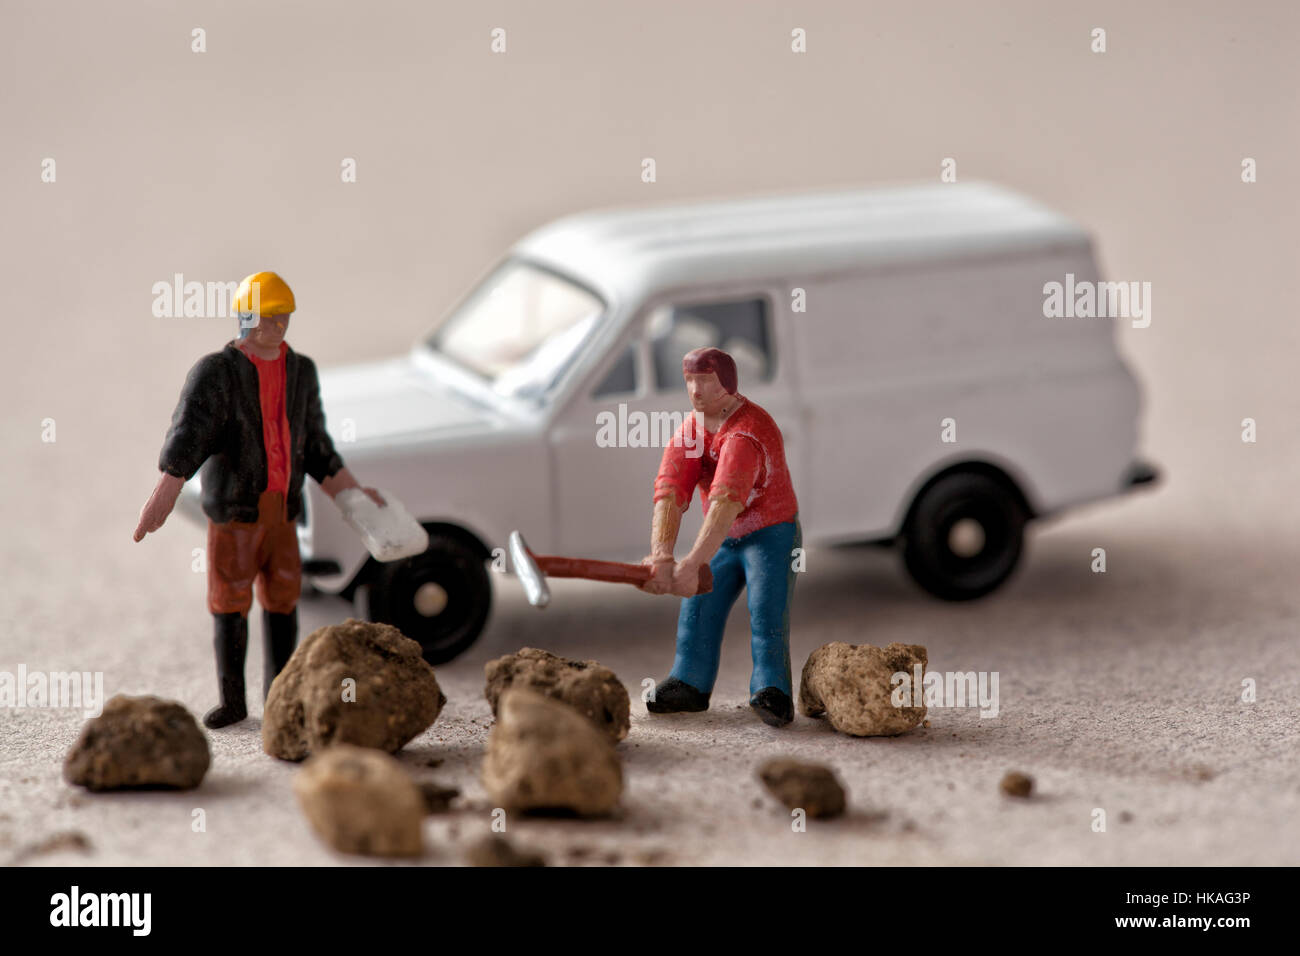 Miniature construction supervisor and worker with lumps of earth and white van - Stock Image